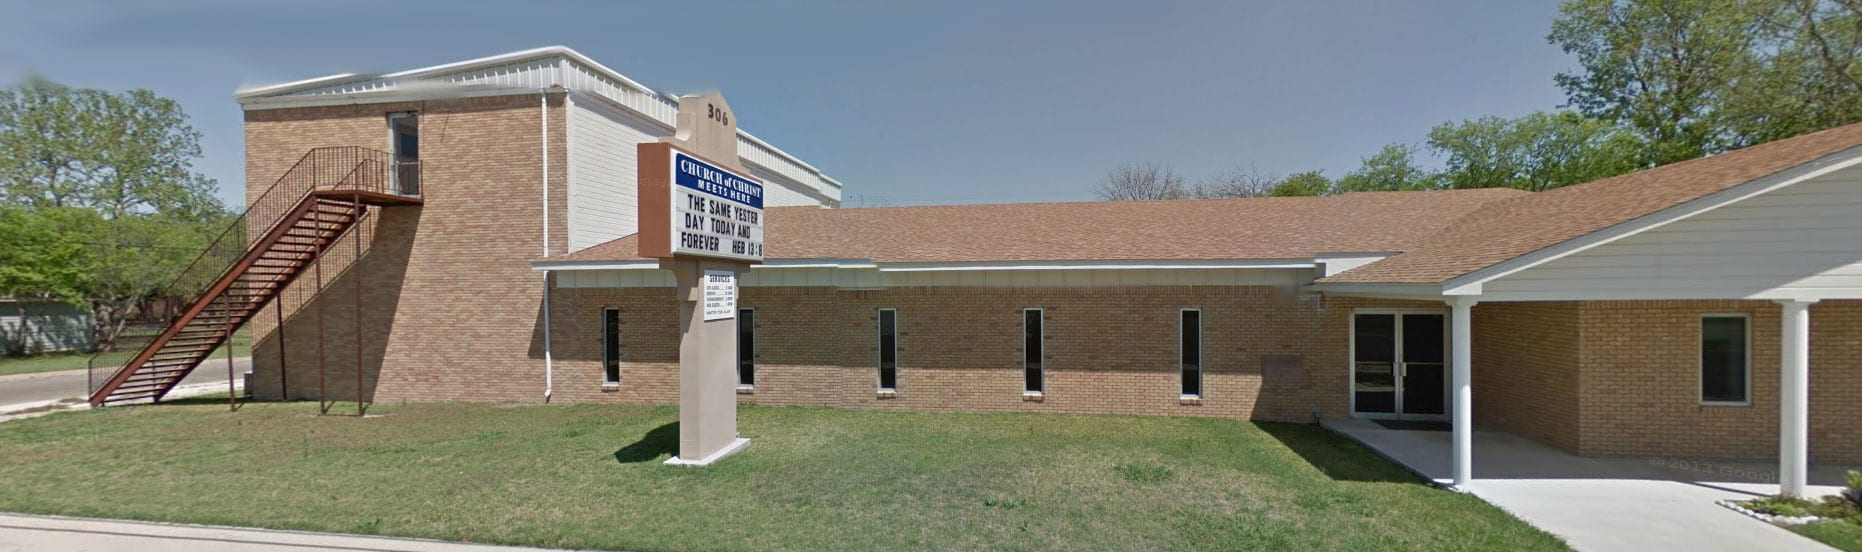 Copperas Cove Church of Christ